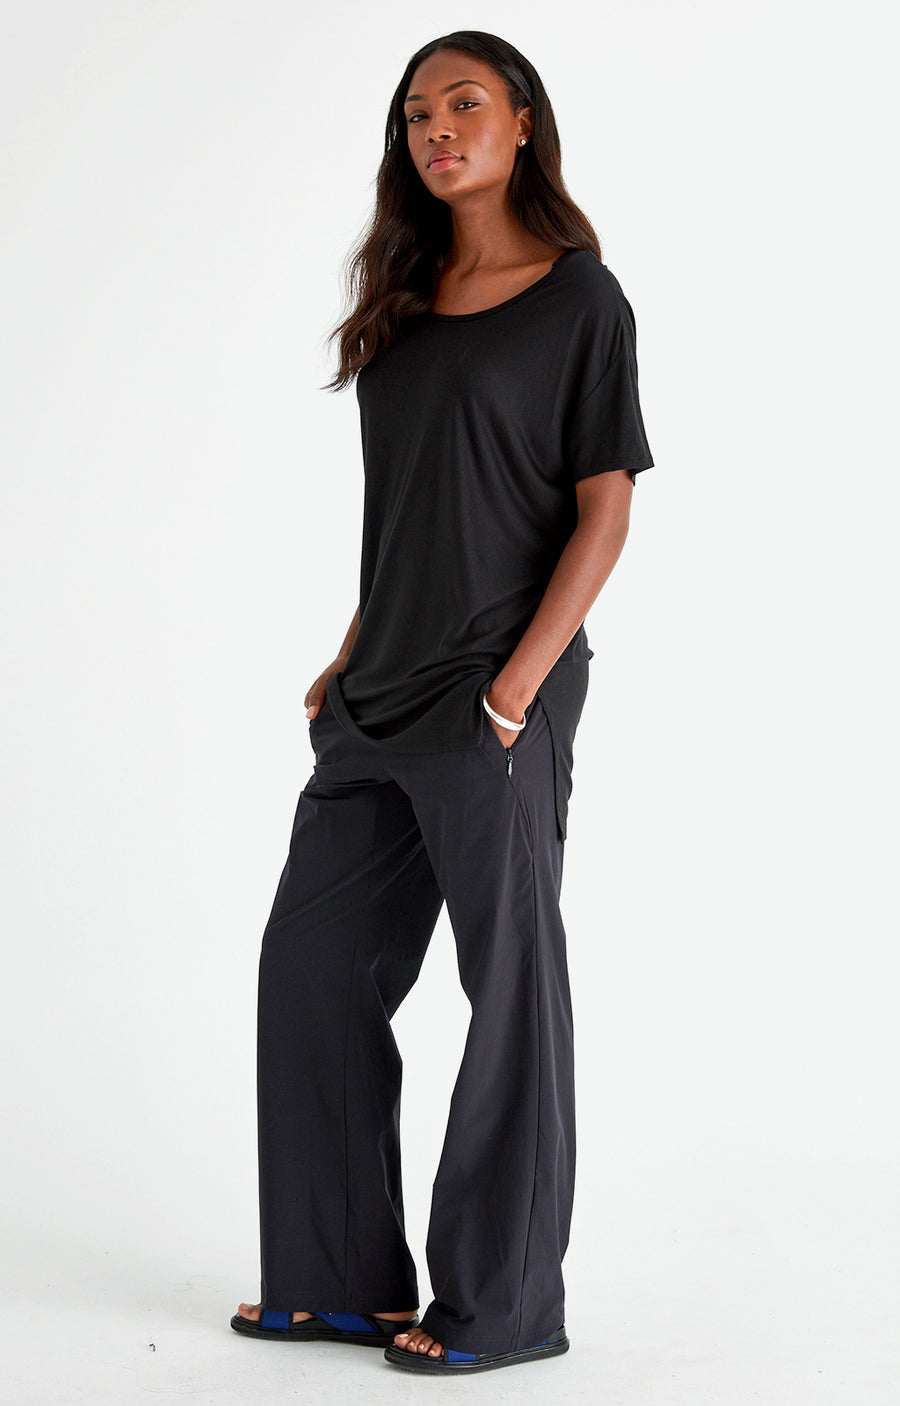 Imagine - Insanely Comfy Long-Haul Flight Pant in Black